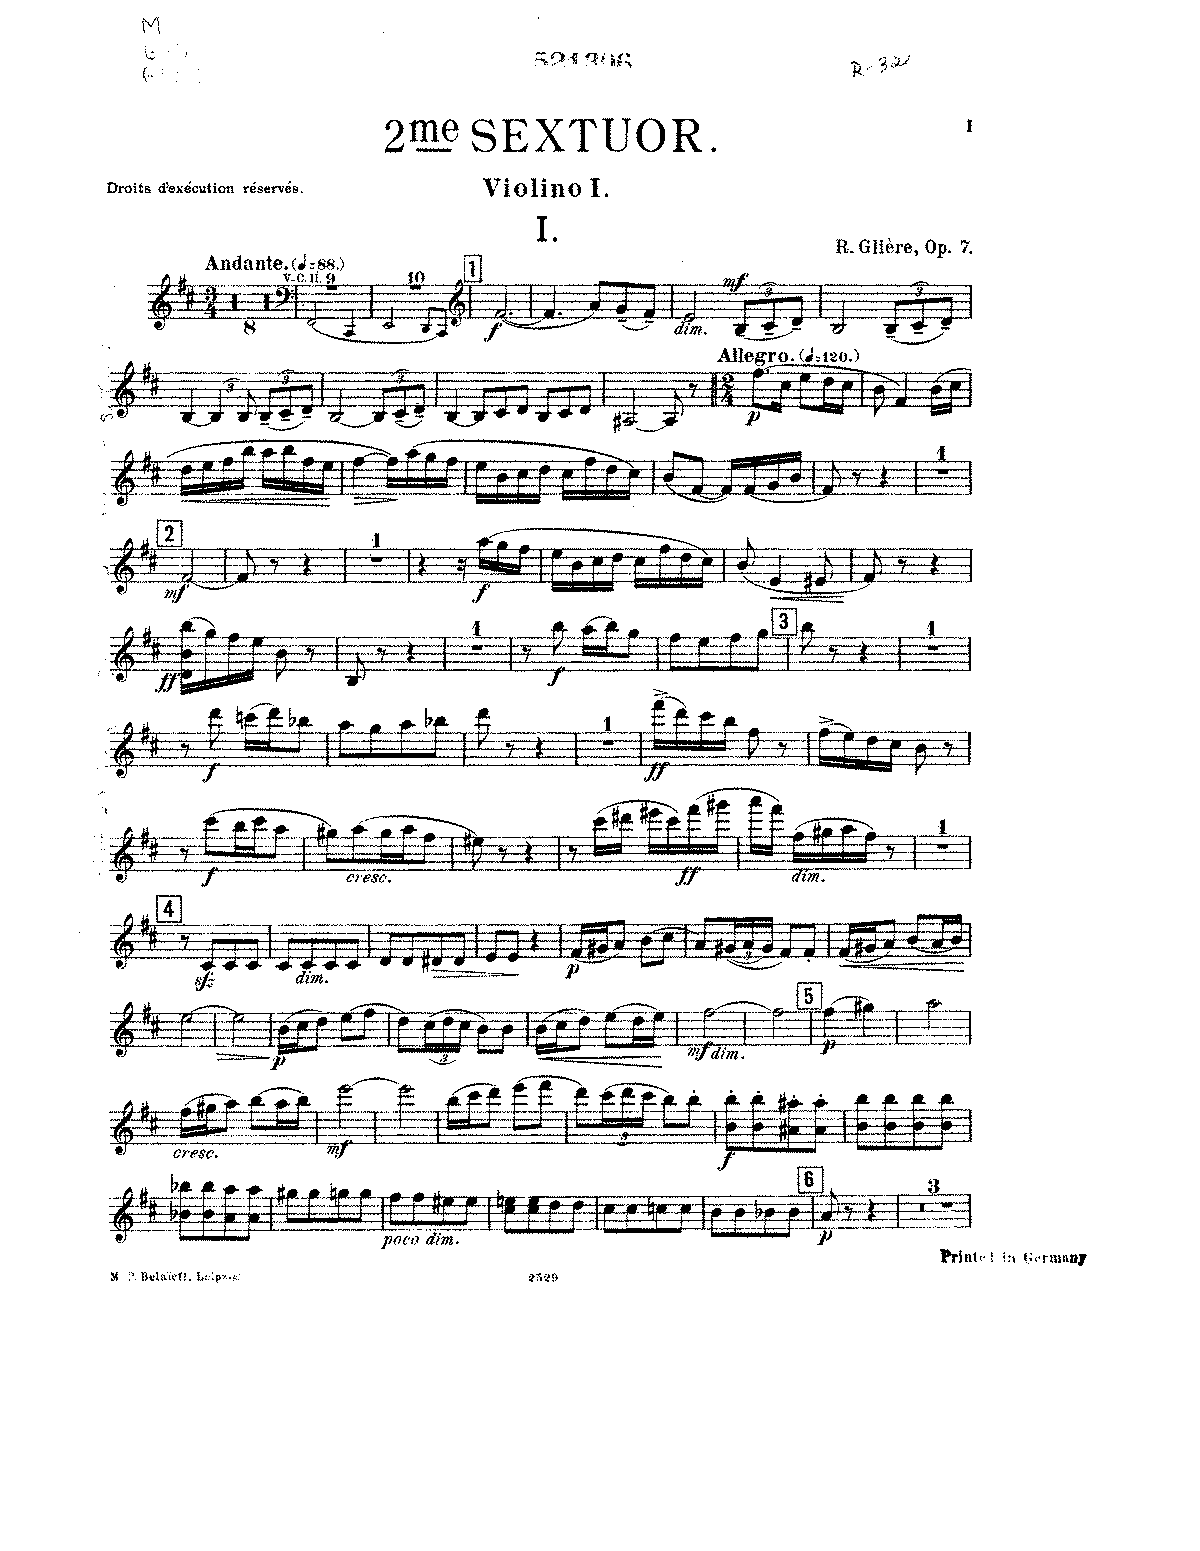 PMLP142017-Gliere - Sextet No2 in B for 2 Violins 2 Violas 2Cellos Op7 violin 1.pdf